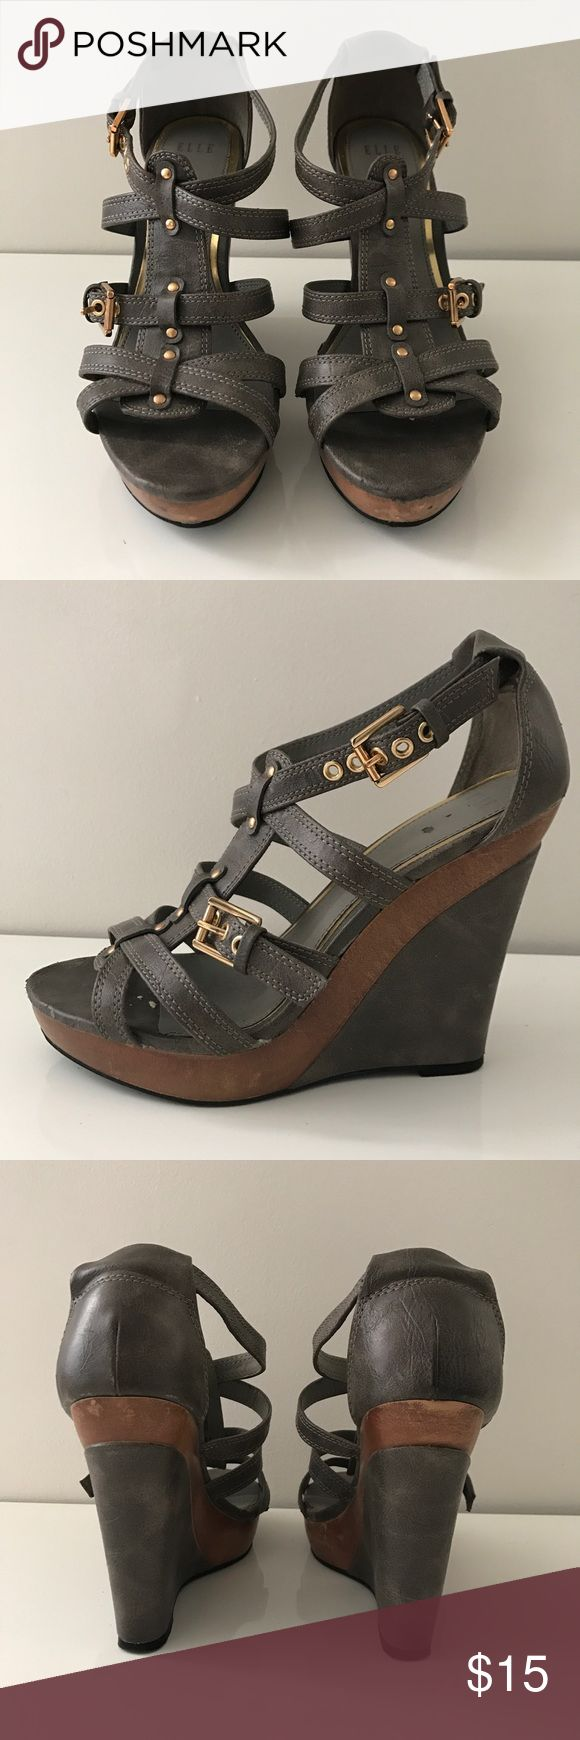 Elle gray and gold wedge sandals Elle wedge sandals. Gray with gold hardware. Bottom too edges a little worn (as seen in photo) but otherwise in good condition. Size 7.5 Elle Shoes Wedges